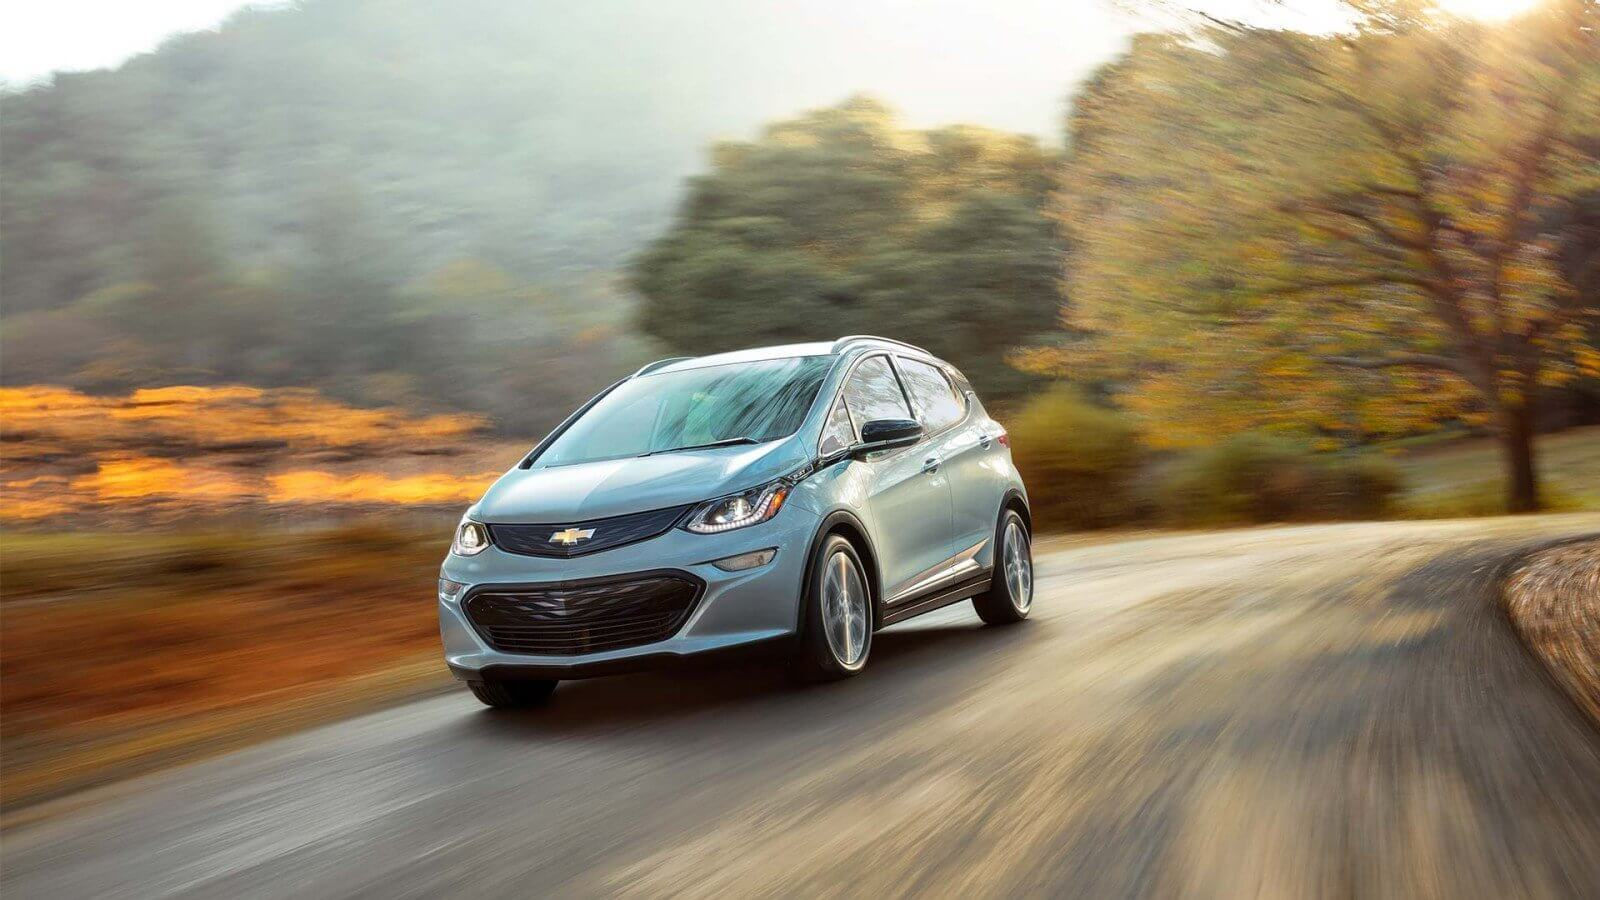 Chevy Bolt Ev Lease Deals Specials For Sale Needham Heights Ma